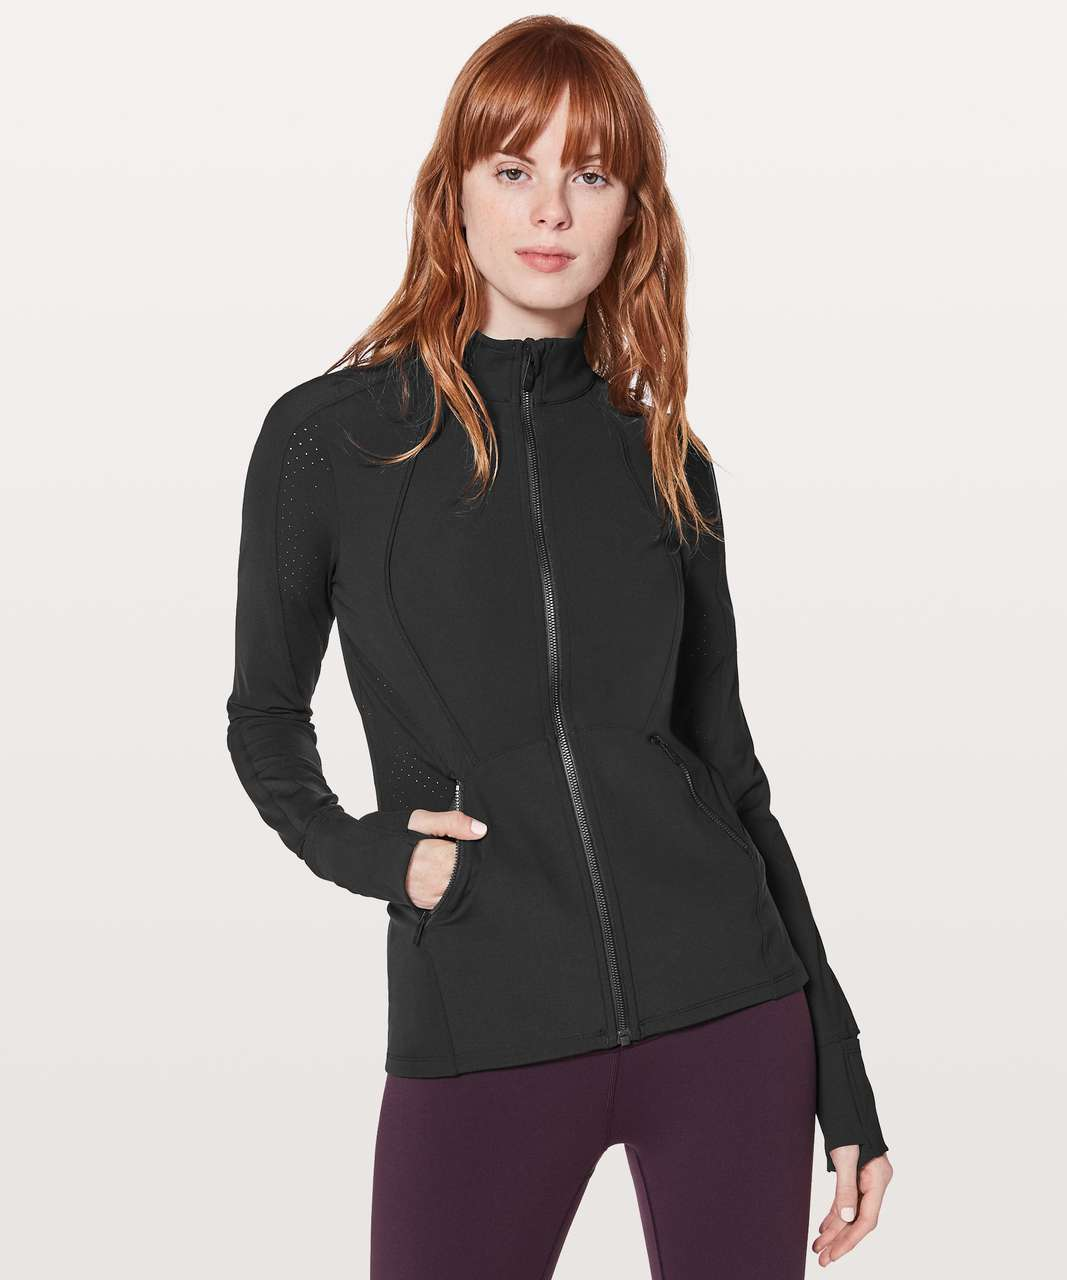 Lululemon Sleek Essentials Jacket - Black